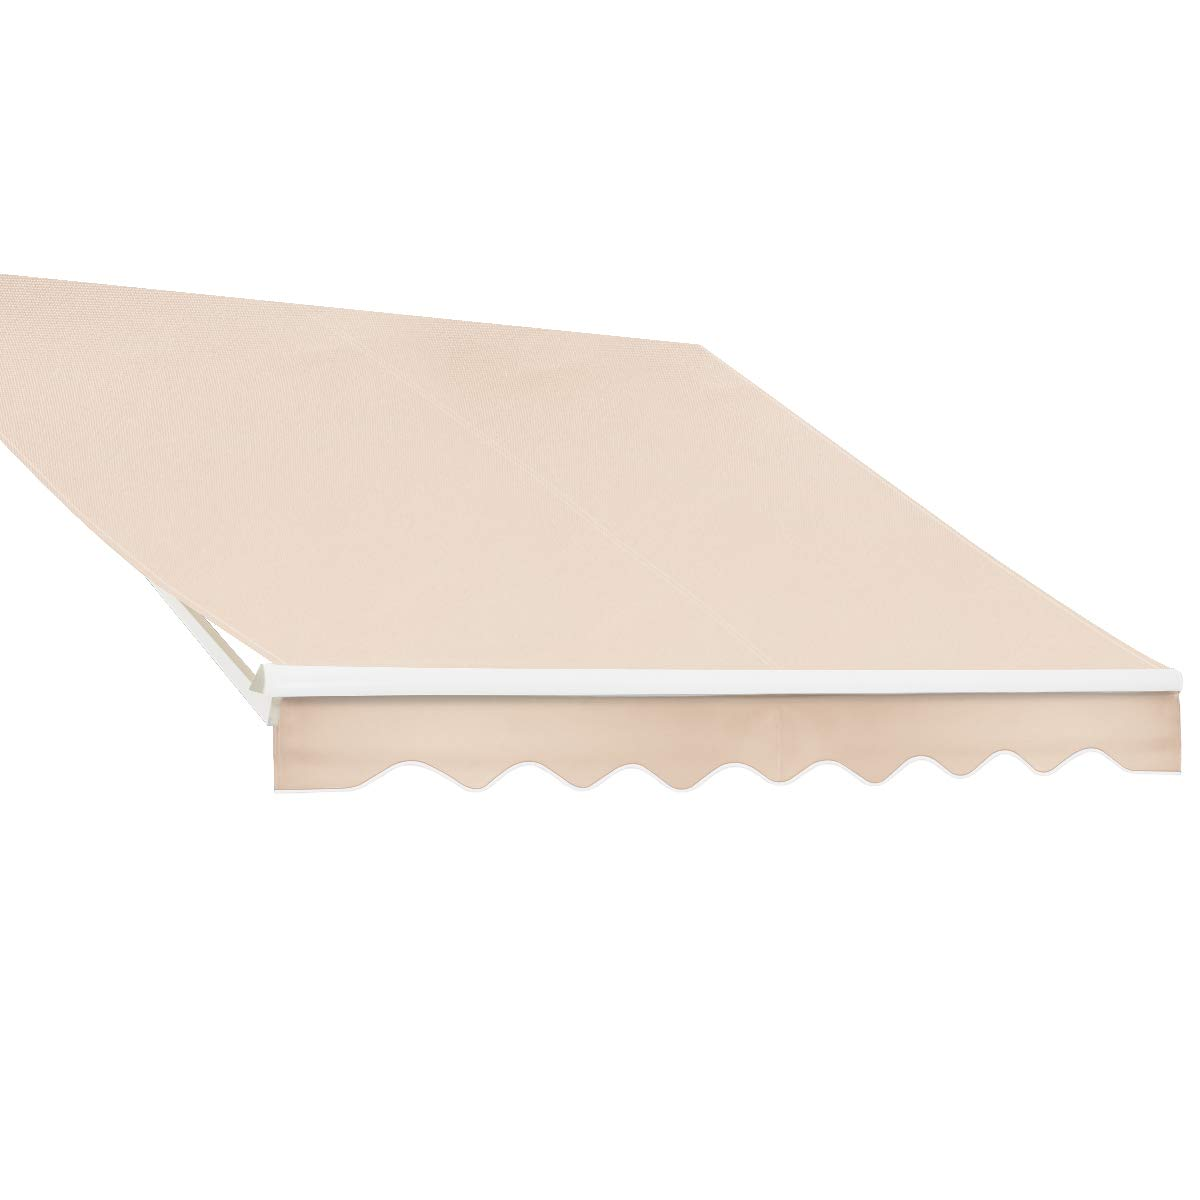 XtremepowerUS Patio Manual Retractable Sunshade Awning Shade Outdoor - Beige (10' x 8'ft) UV Resistant Water Sun Shade by XtremepowerUS (Image #4)